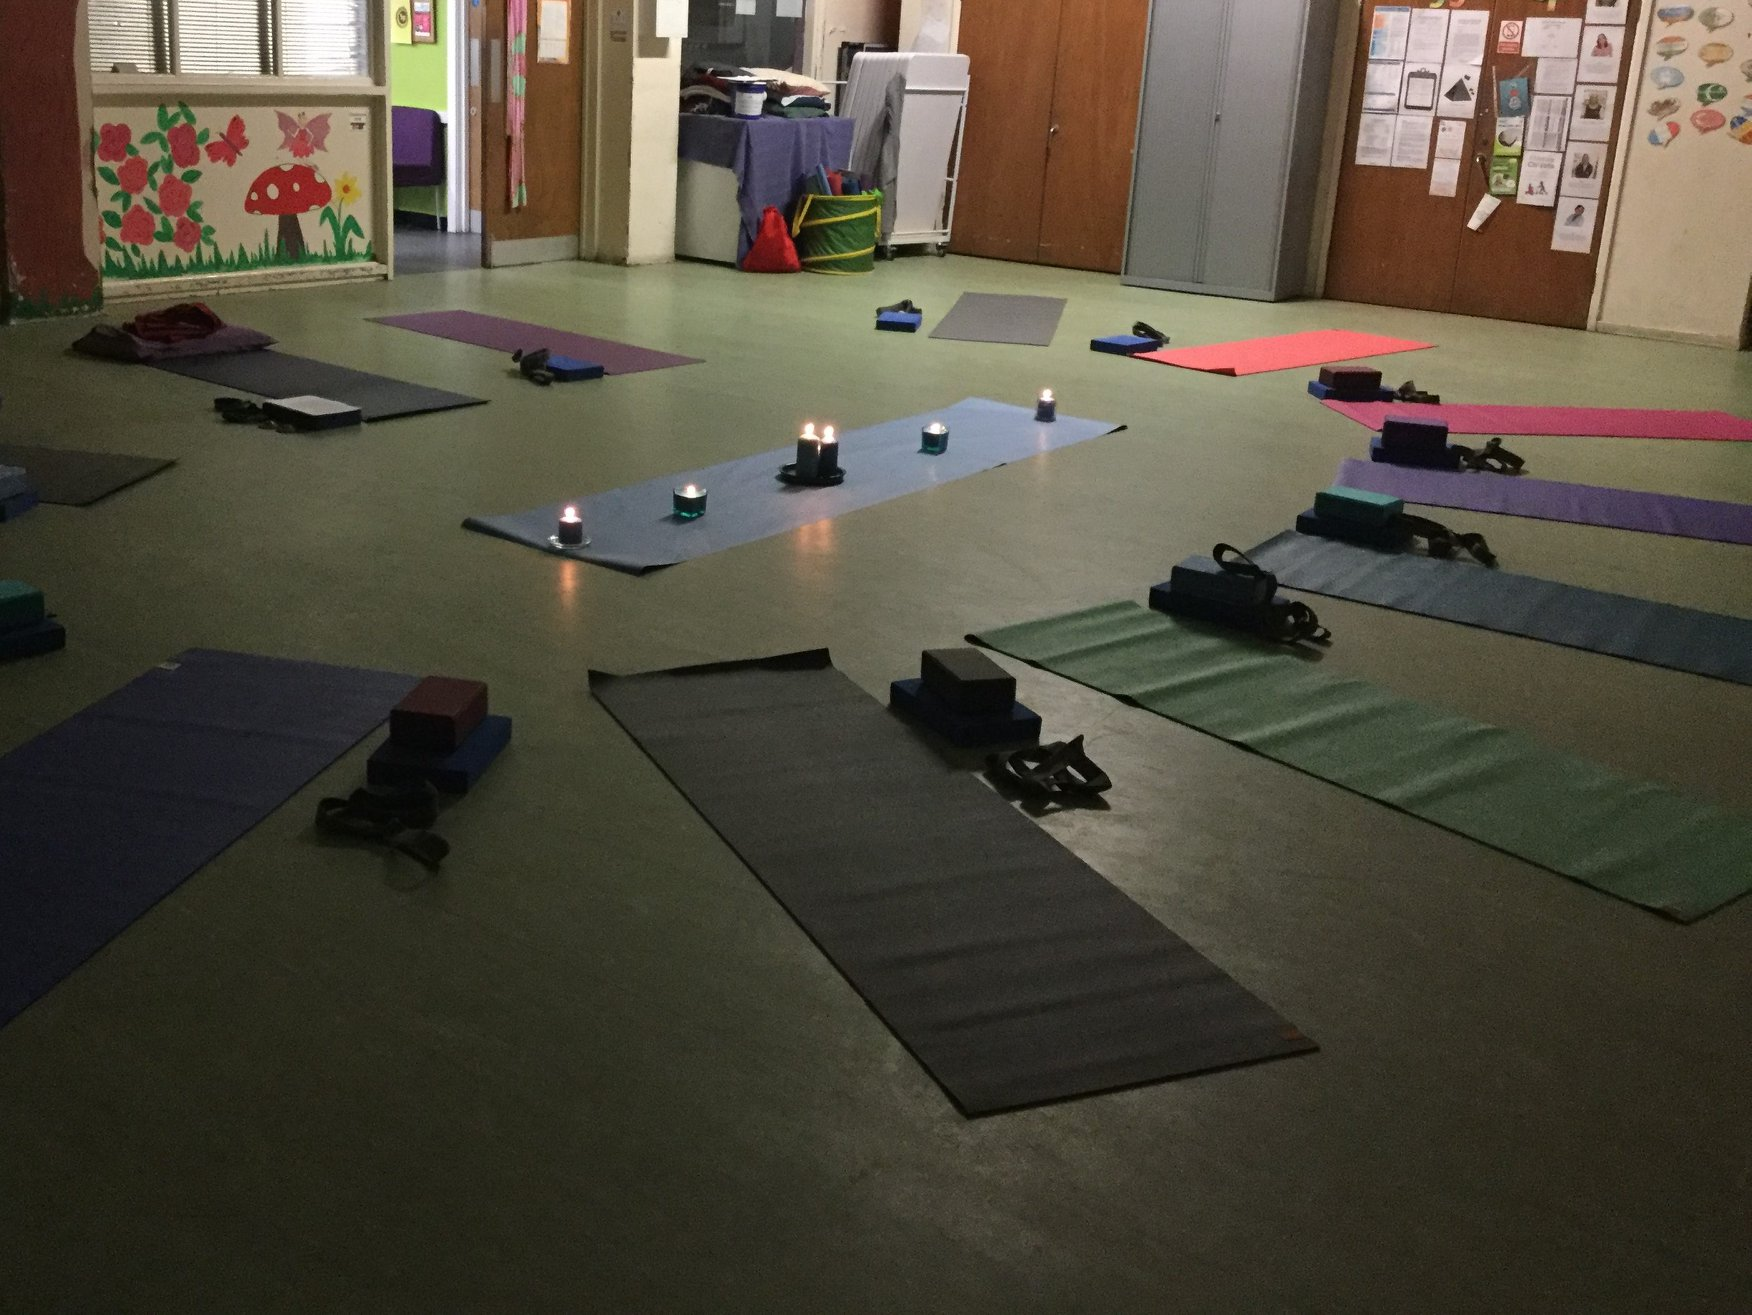 Setup of a Yoga for All Manchester session back in April 2019: yoga mats, candles, blocks in a dimly lighted room